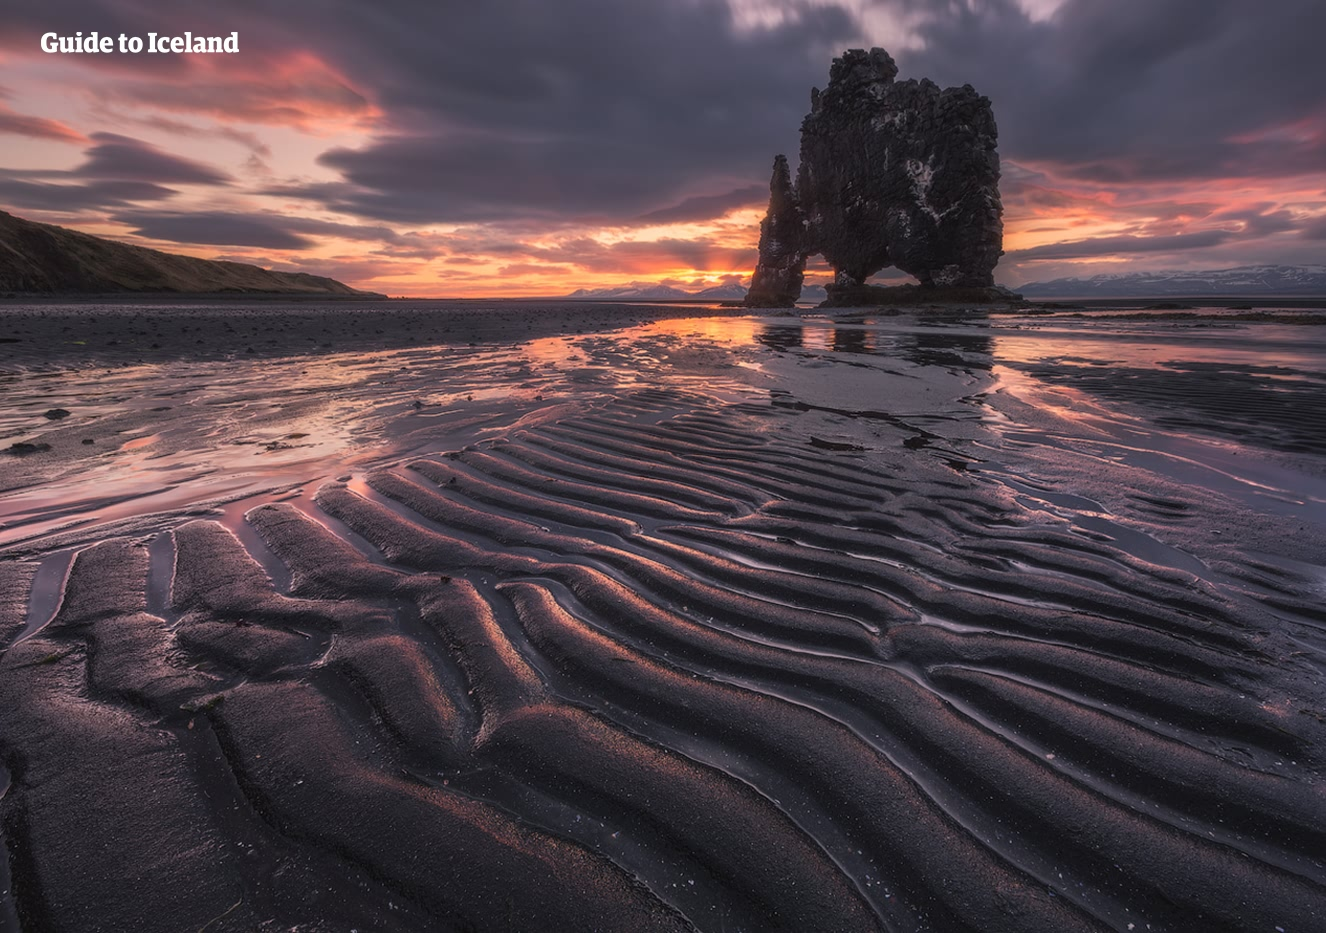 The Hvitserkur Rock Formation off the coast of the Troll Peninsula of Iceland.